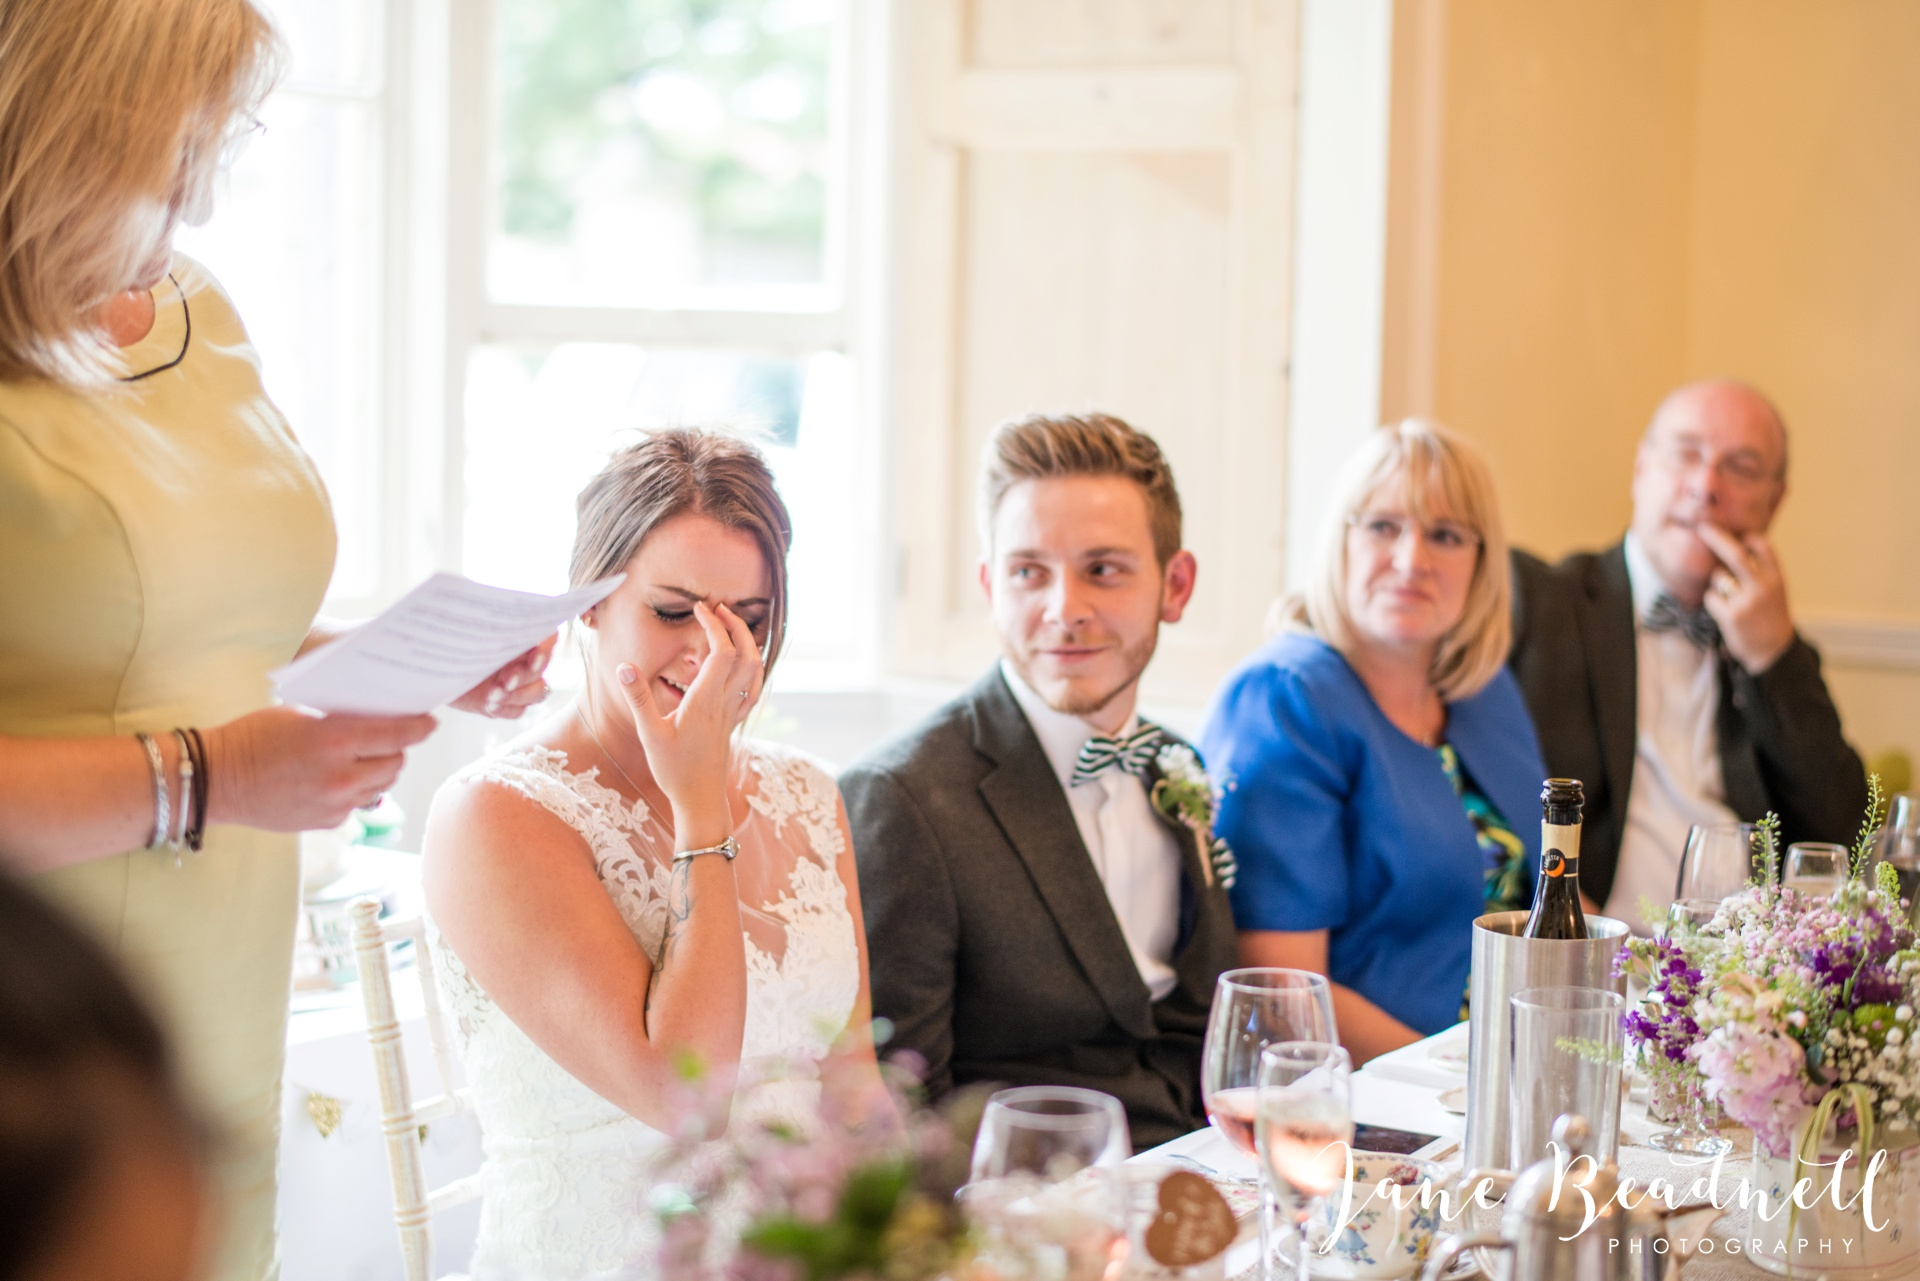 Jane Beadnell fine art wedding photographer The Old Deanery Ripon_0061